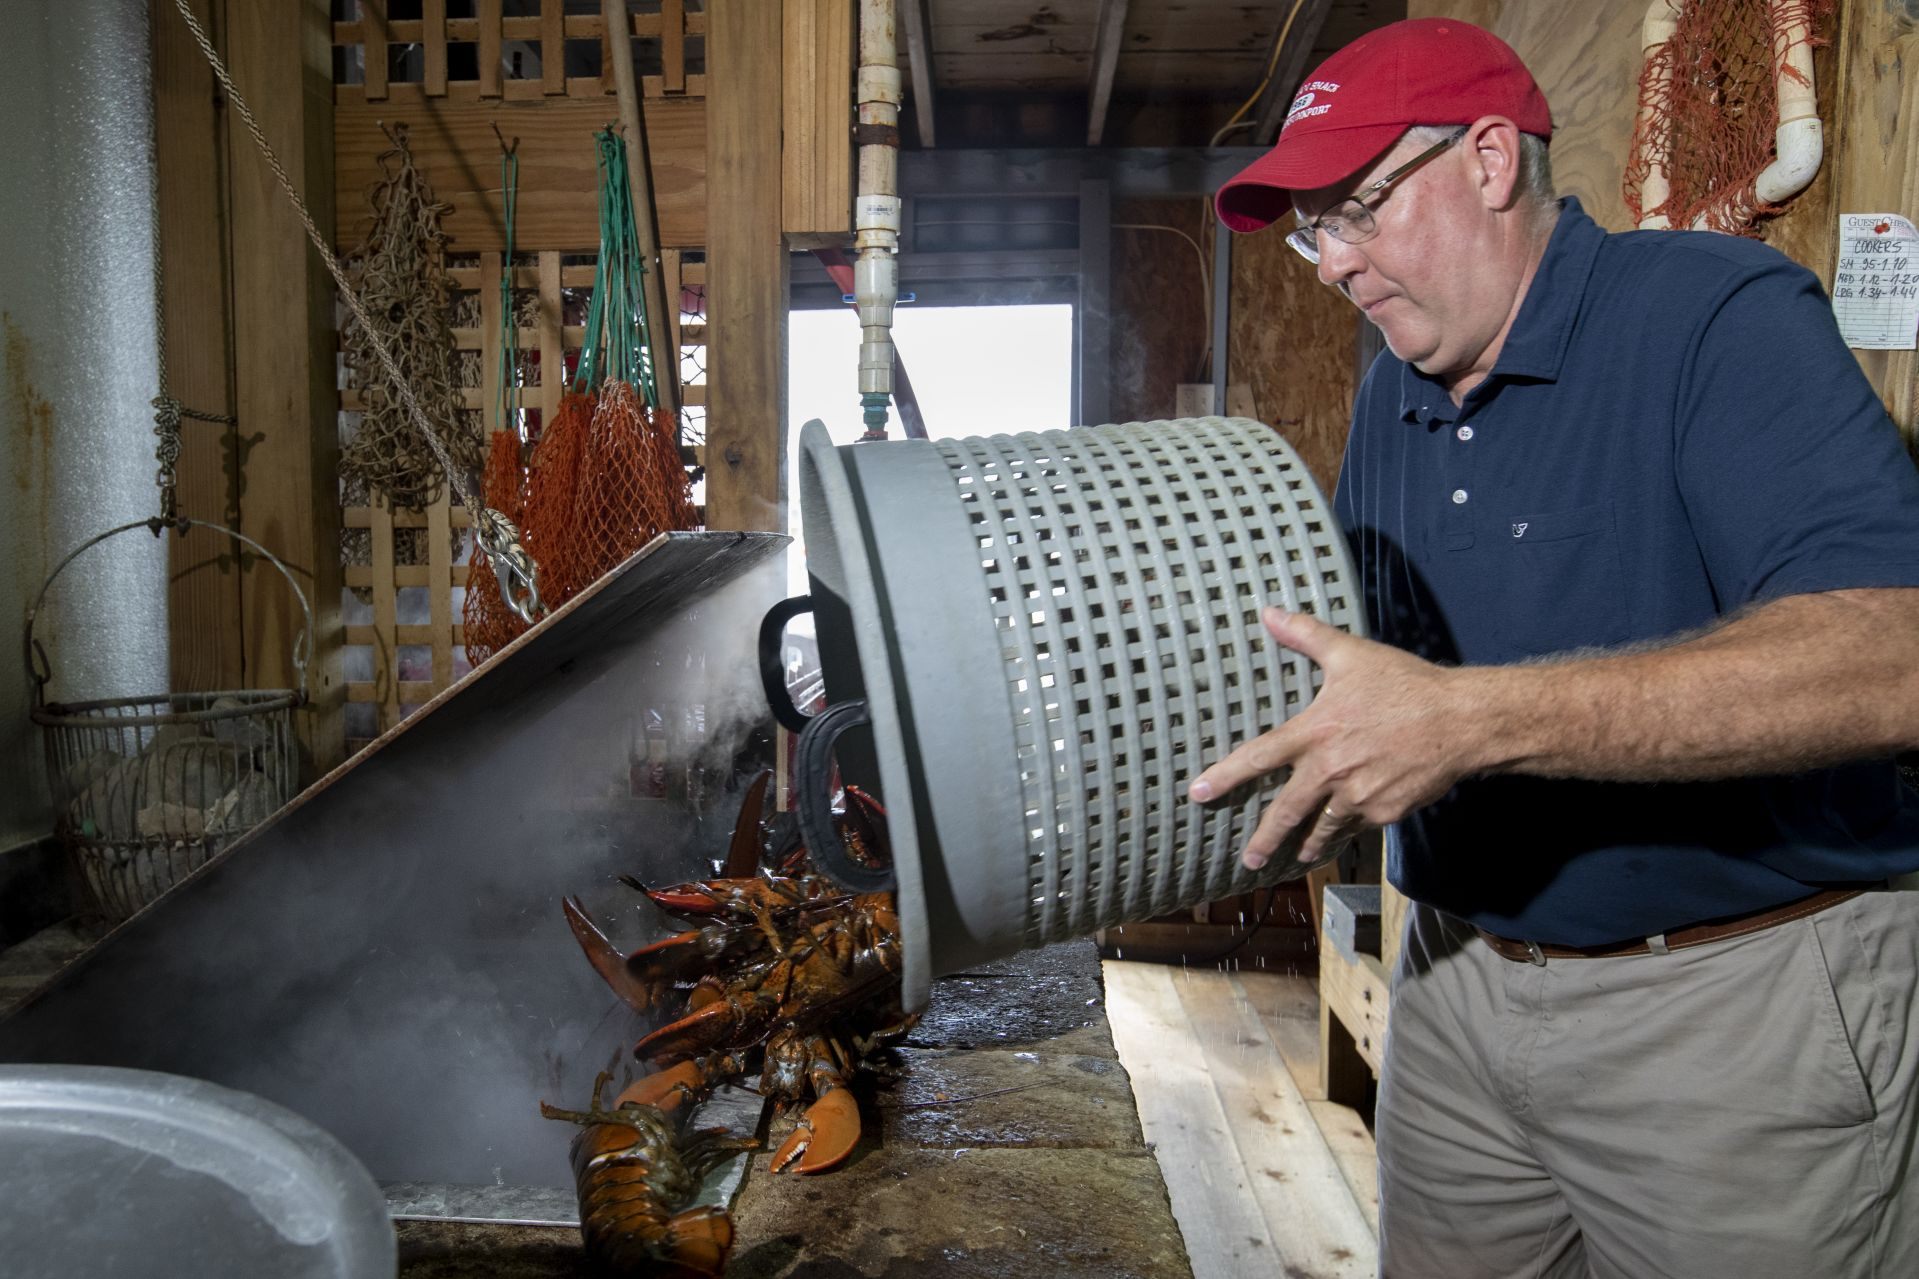 Steve Kingston tips a basket of lobsters, freshly caught in nearby waters, into a boiling kettle. On a busy summer day, the Clam Shack will go through 1,000 pounds of lobsters. (Phyllis Graber Jensen/Bates College)